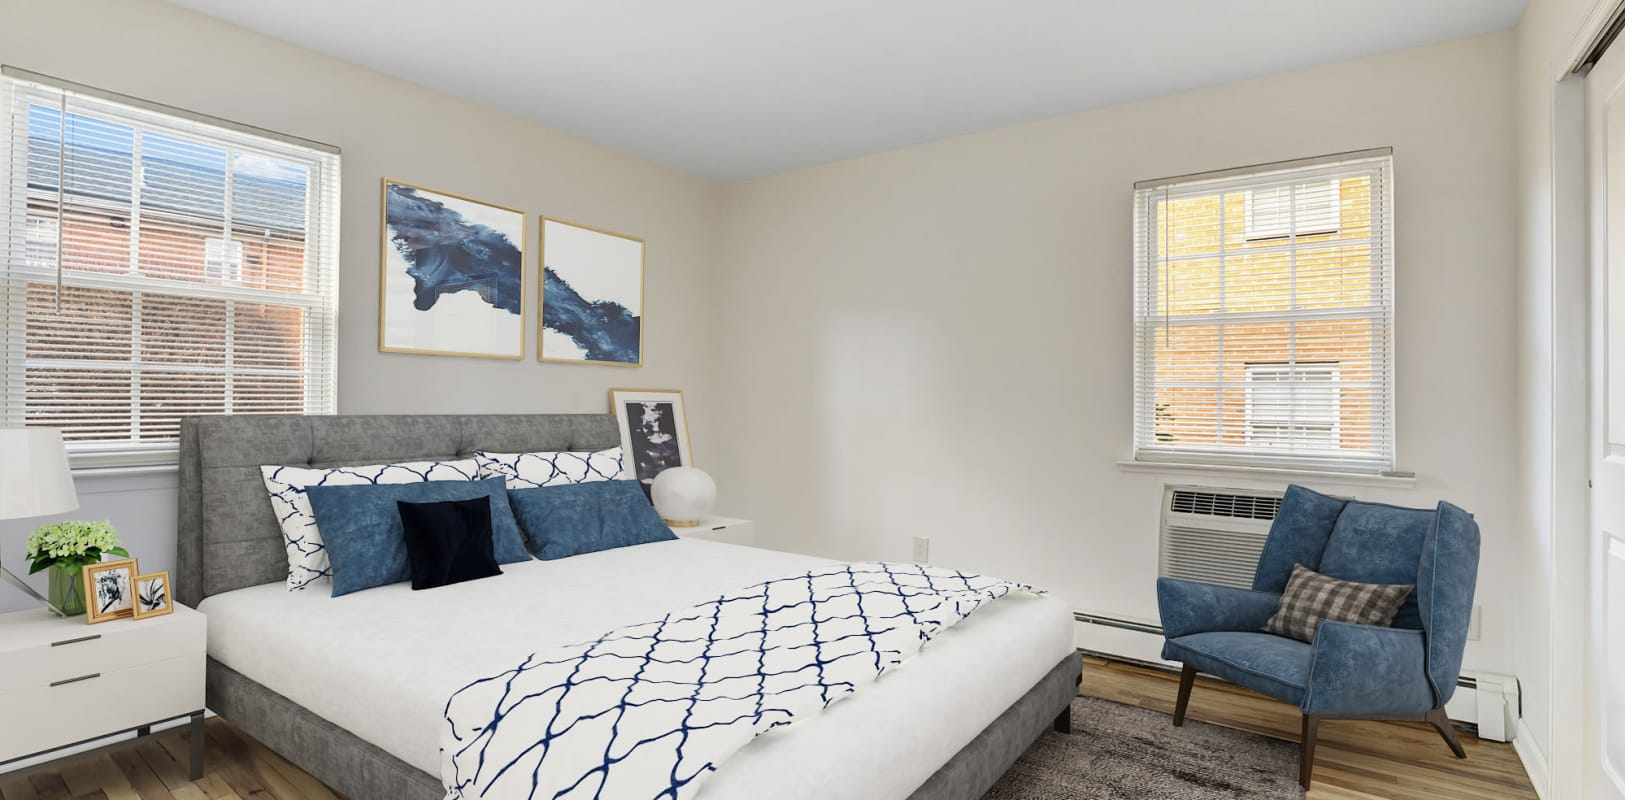 Large bedroom with natural lighting at Park Lane Apartments in Little Falls, New Jersey